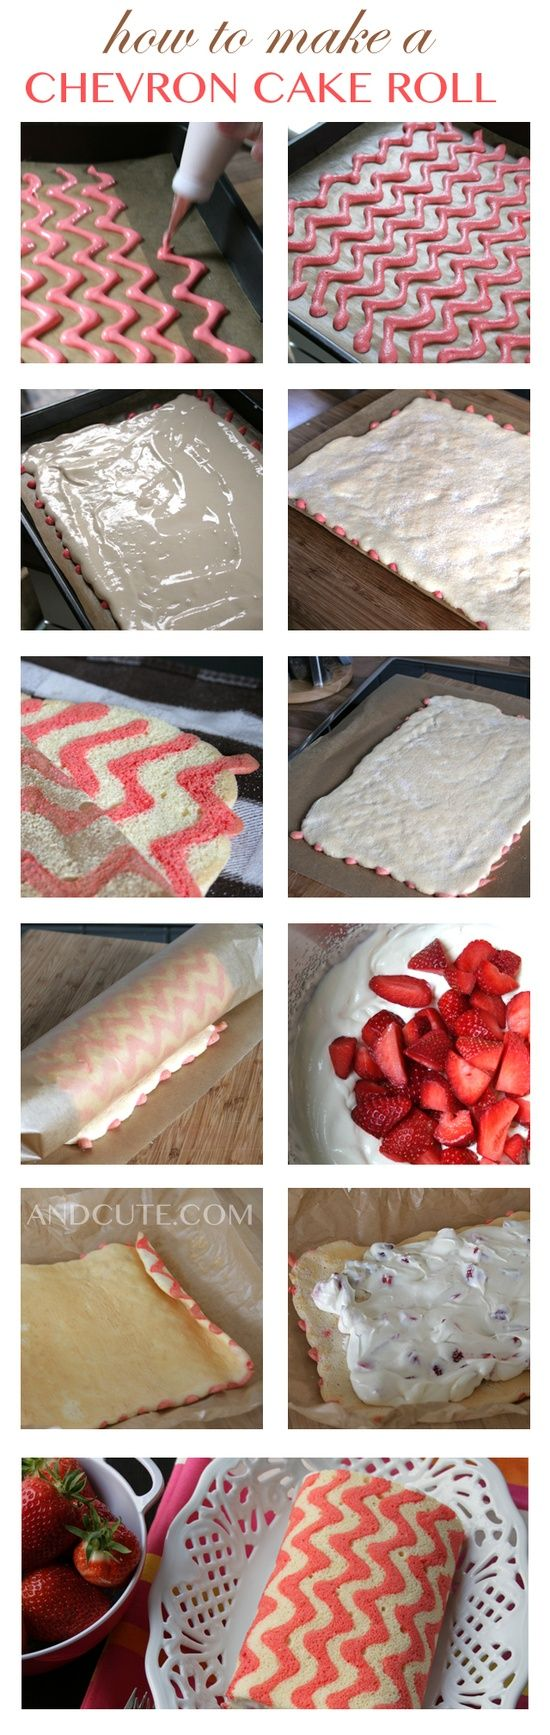 Chevron Cake Roll. How cool is this?! I want to try this with other designs!